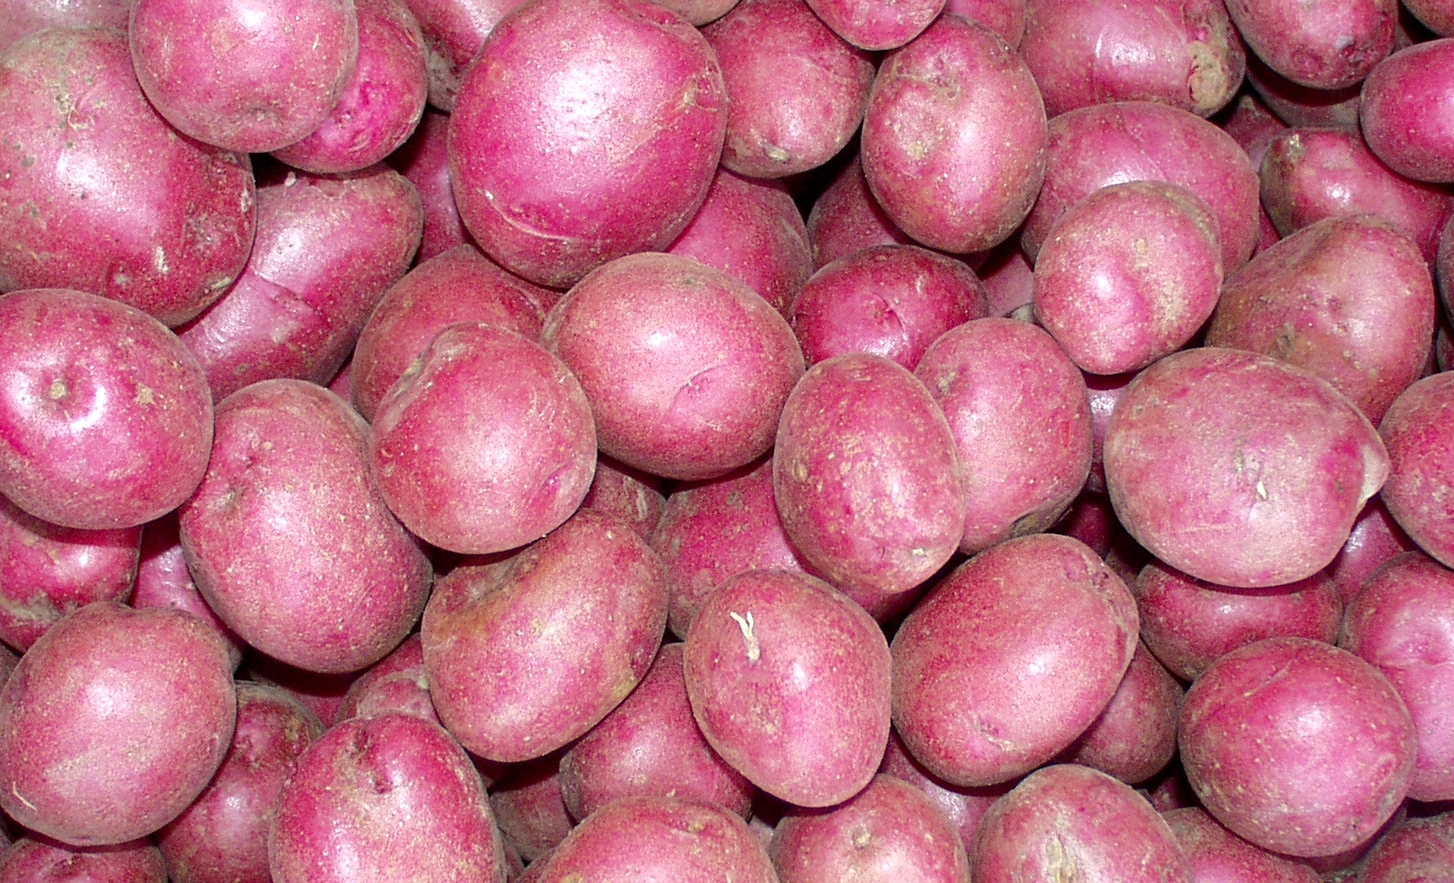 Mountain Rose potatoes from Olsen Farms. Photo copyright 2009 by Zachary D. Lyons.